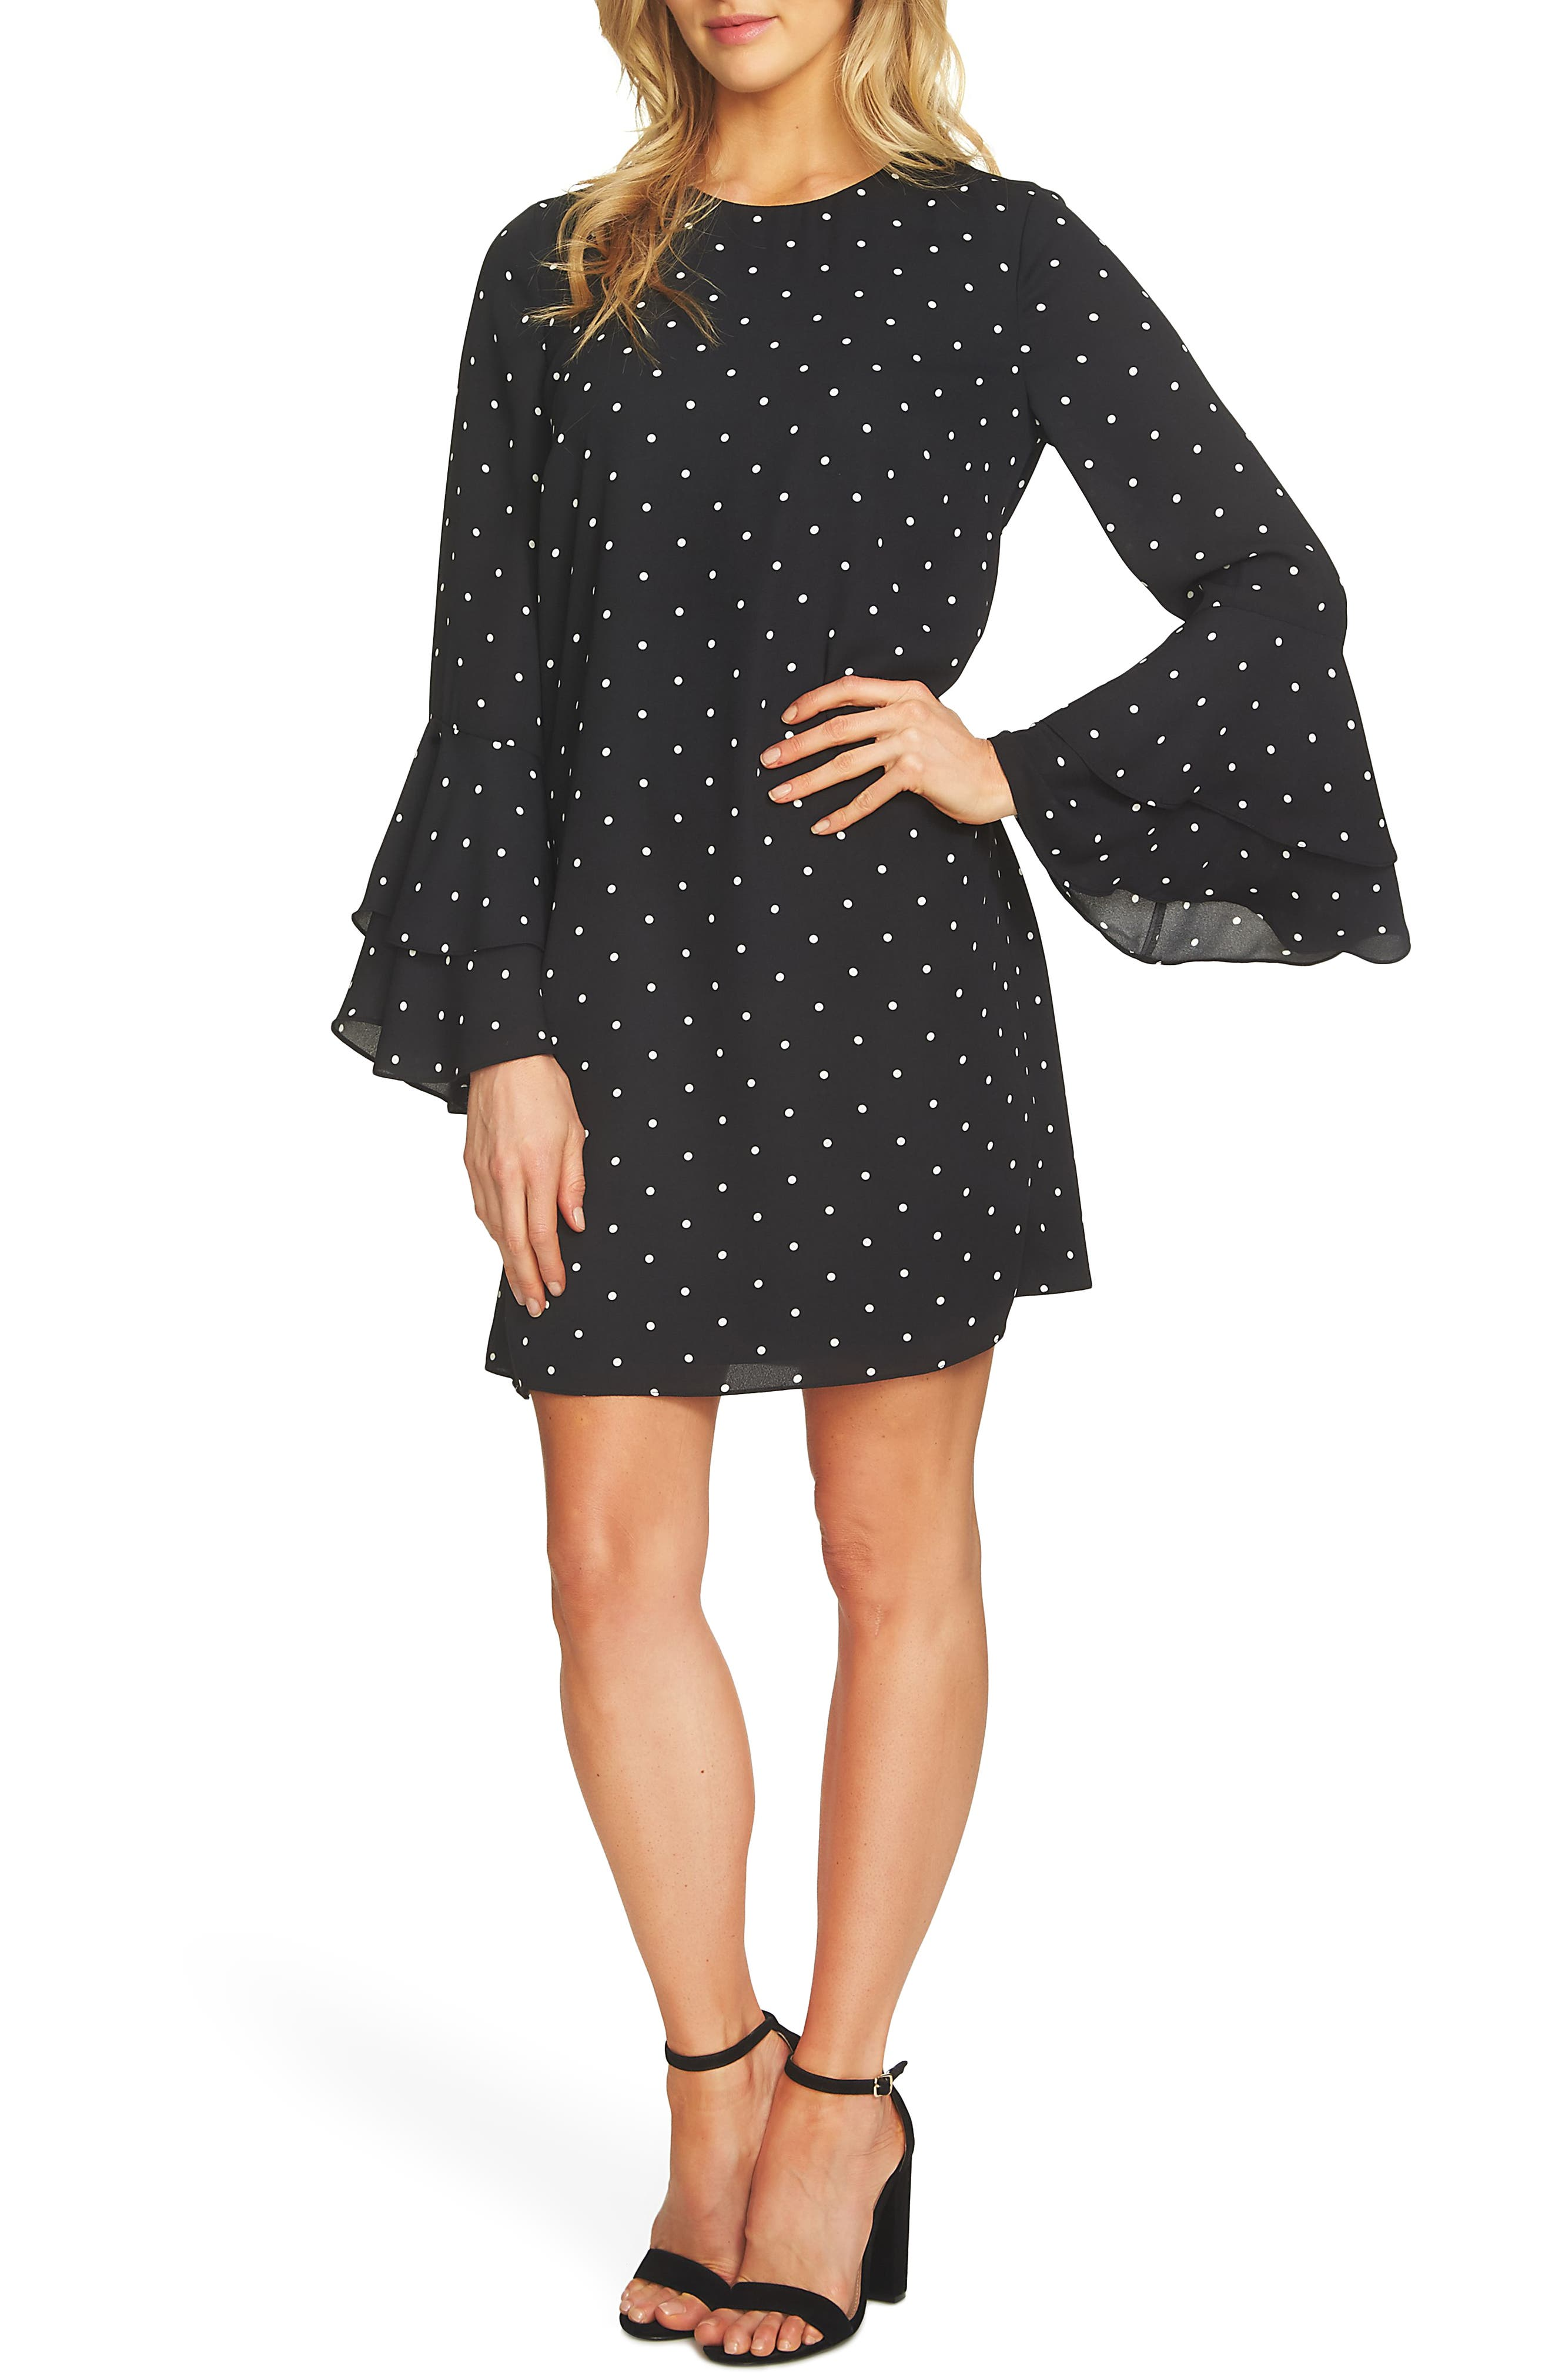 Bell Sleeve Polka Dot Dress,                             Main thumbnail 1, color,                             Rich Black